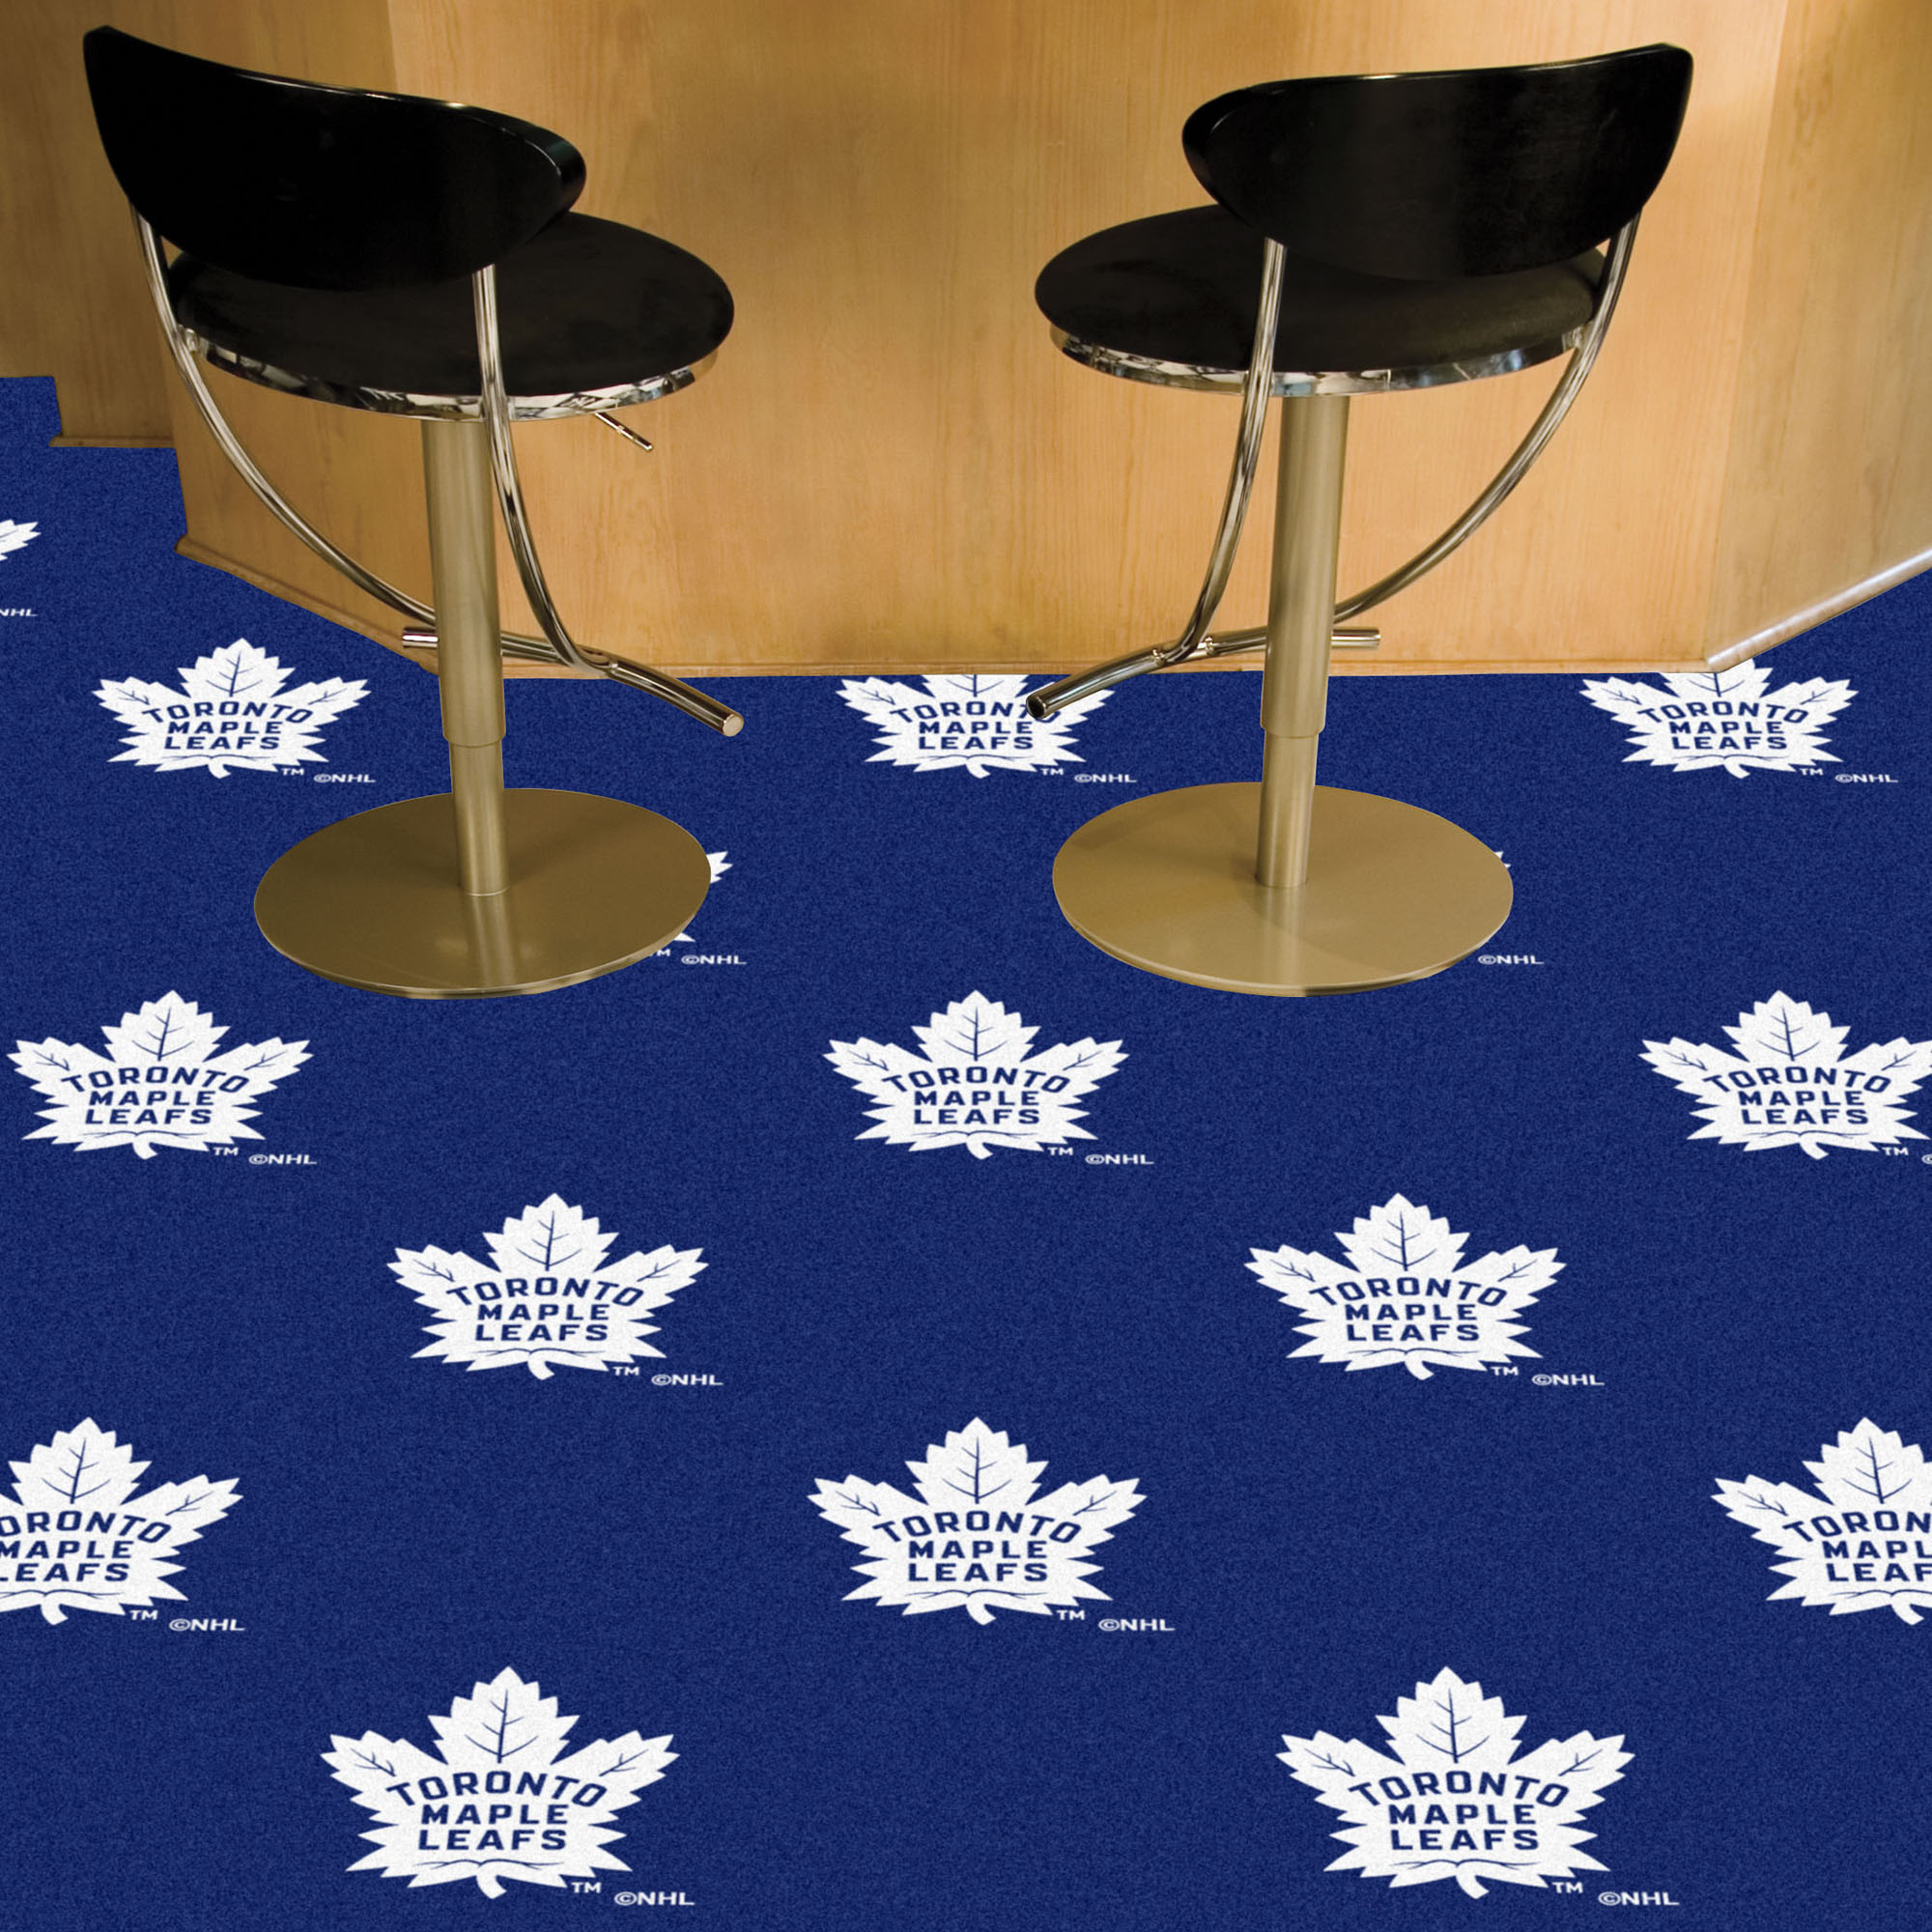 Toronto Maple Leafs Carpet Tiles 18x18 in.